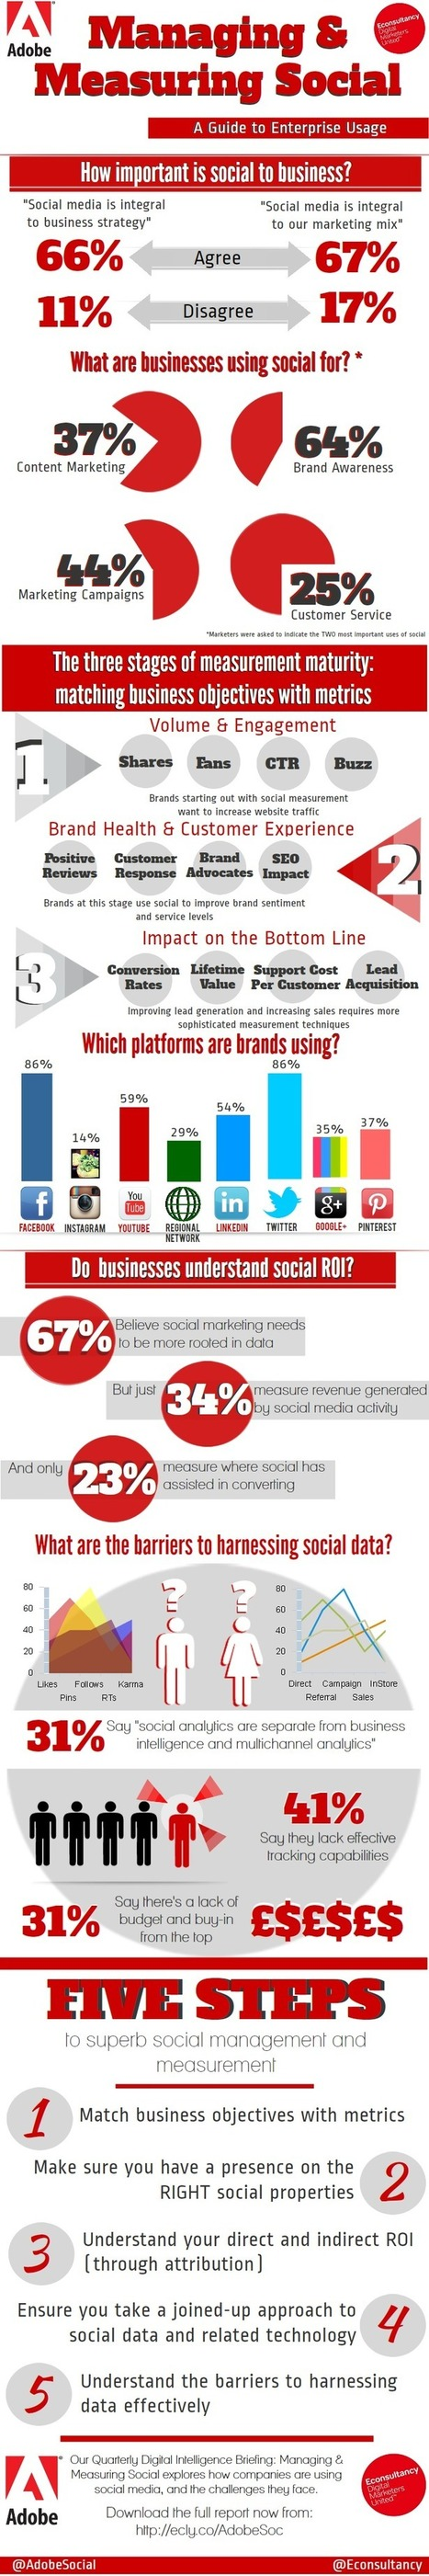 67% of Businesses Say Social is Integral to Marketing Plans [infographic] | IMC articles | Scoop.it